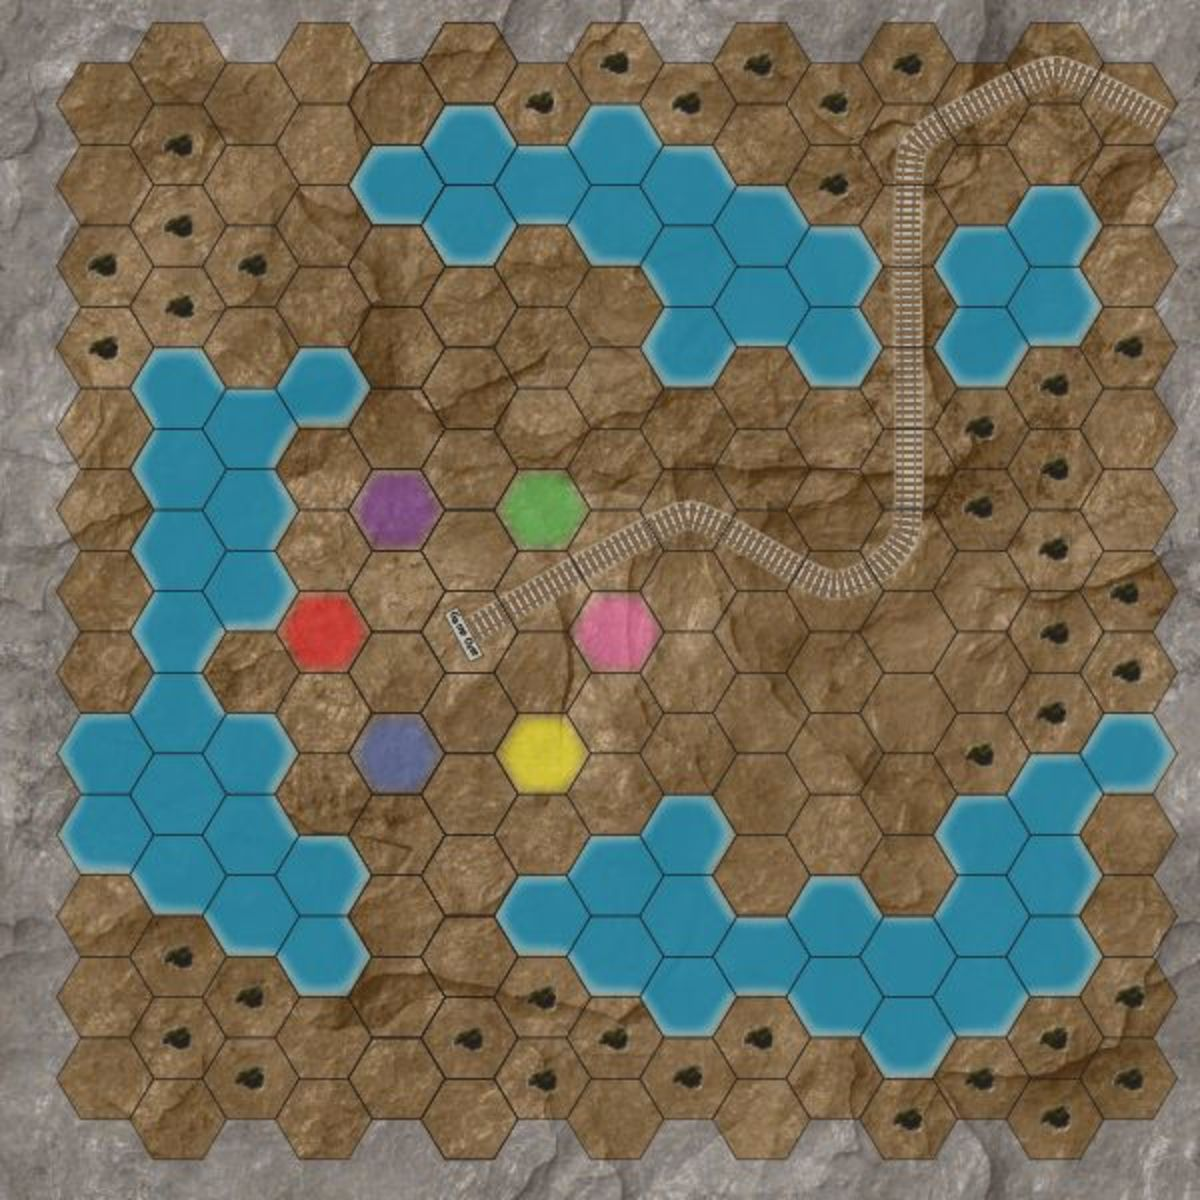 Generic gold-mining game template.